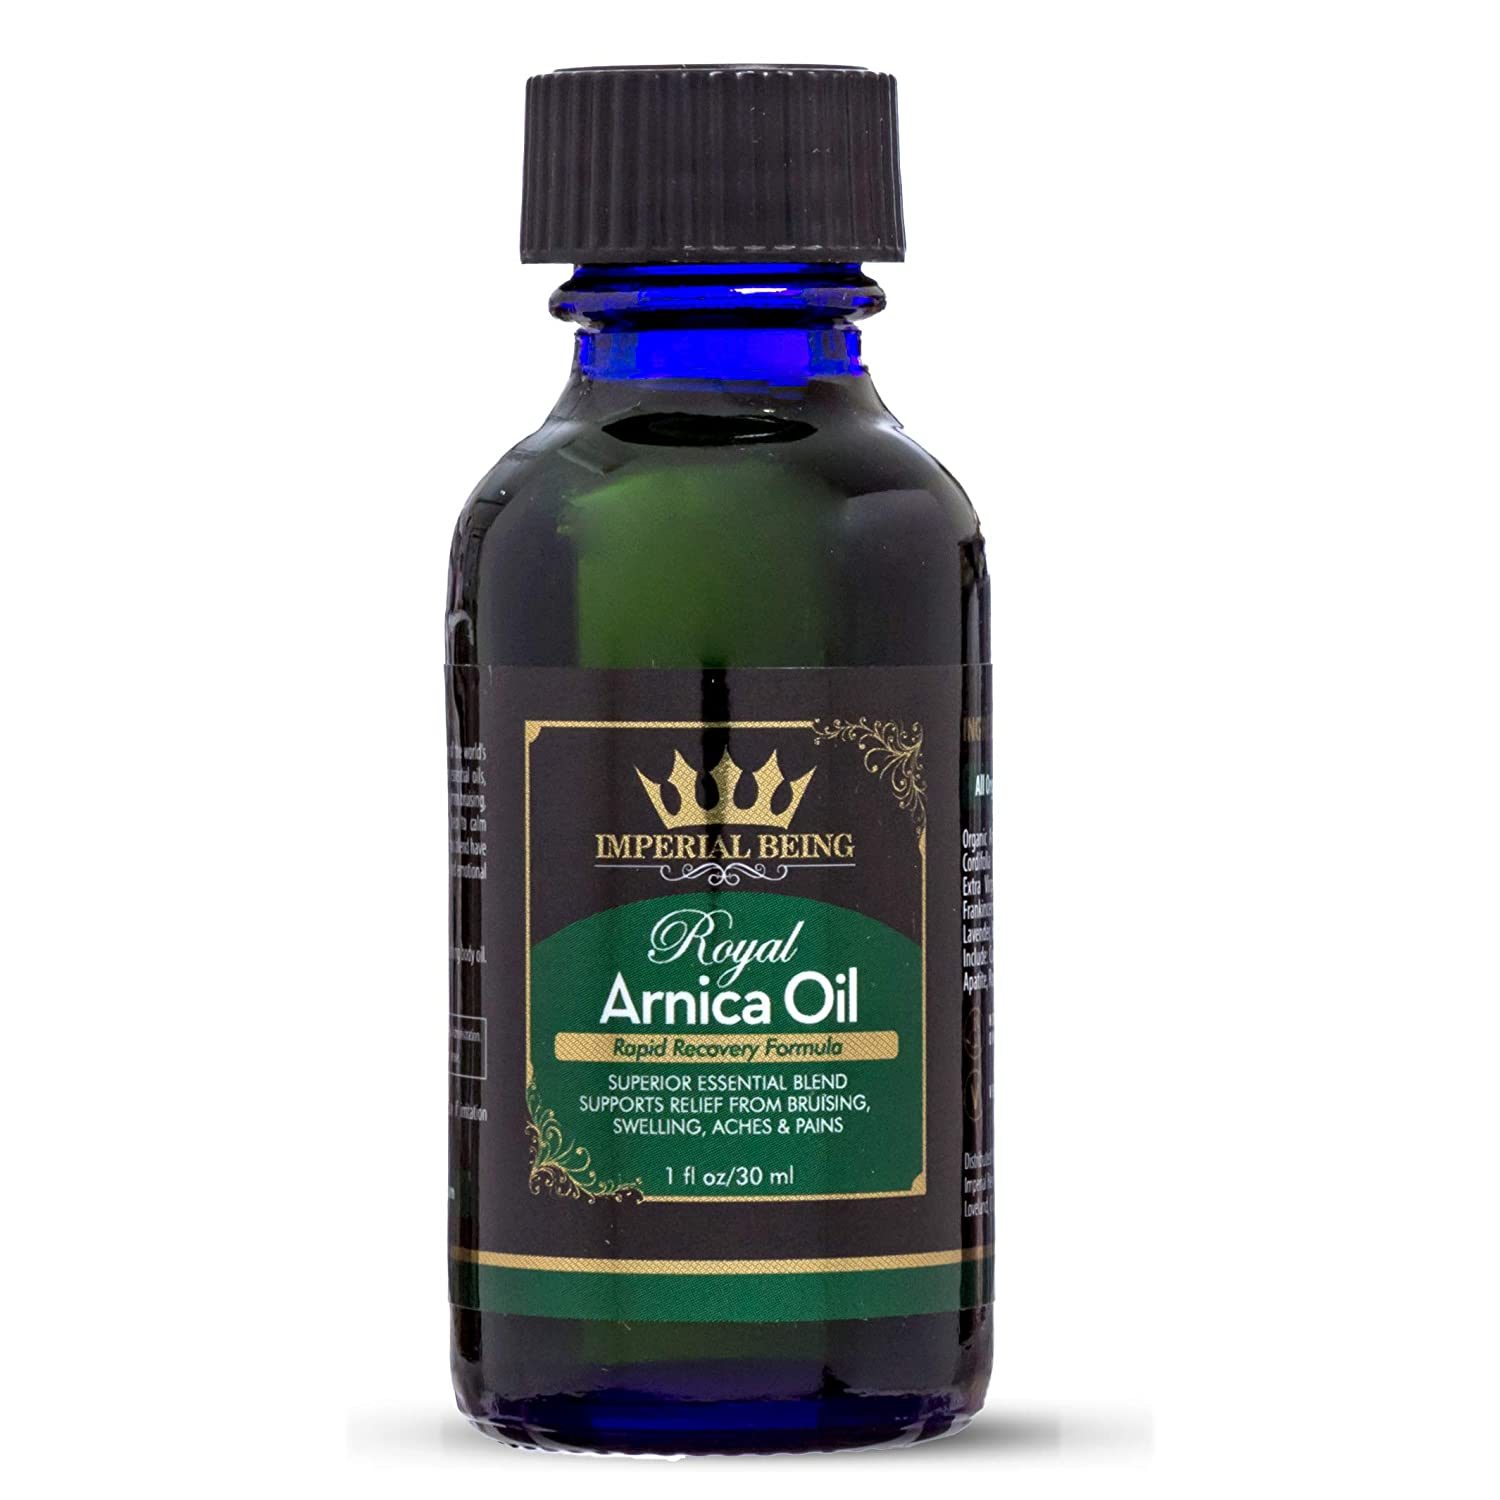 ROYAL ARNICA OIL - Rapid Recovery Formula - Organic Super Premium Herbal Blend with Essential Oils for Natural Pain Relief, Sore Muscles, Bruise Care, Massage Therapy, Trauma, Aches (1oz)